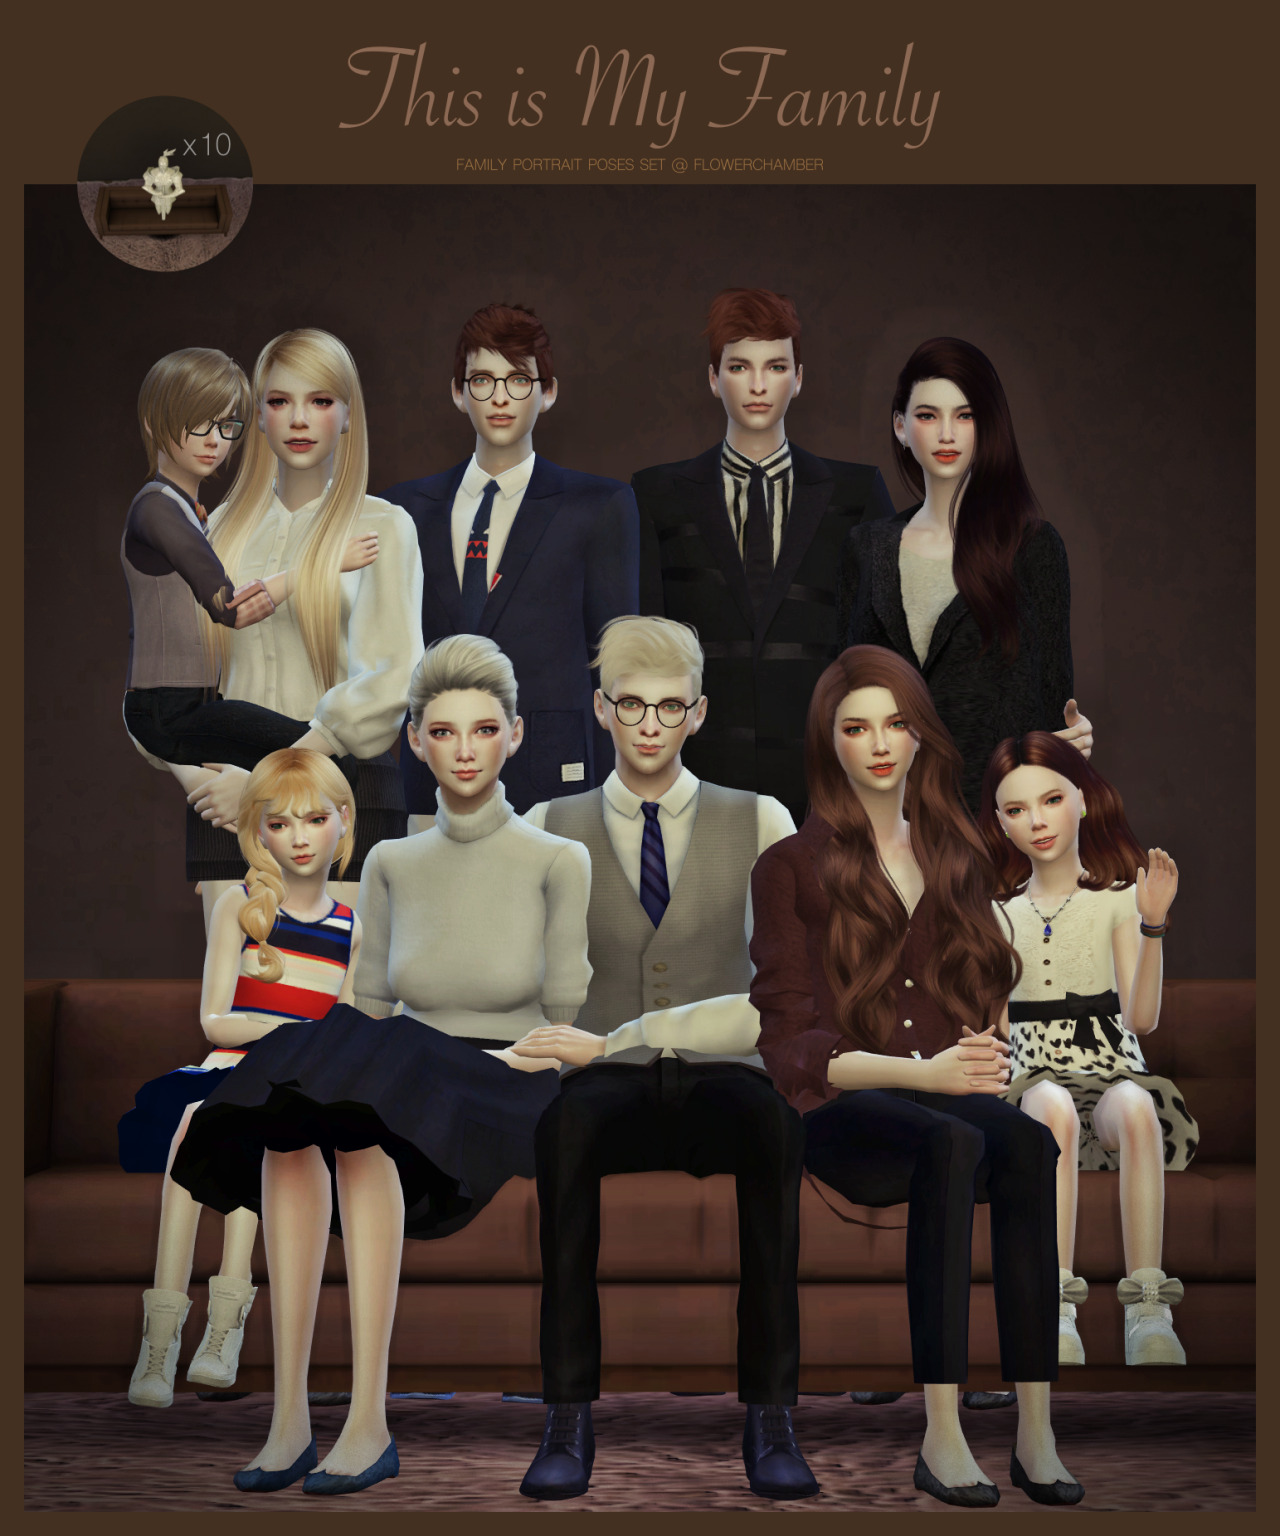 FAMILY PORTRAIT POSES SET by flowerchamber